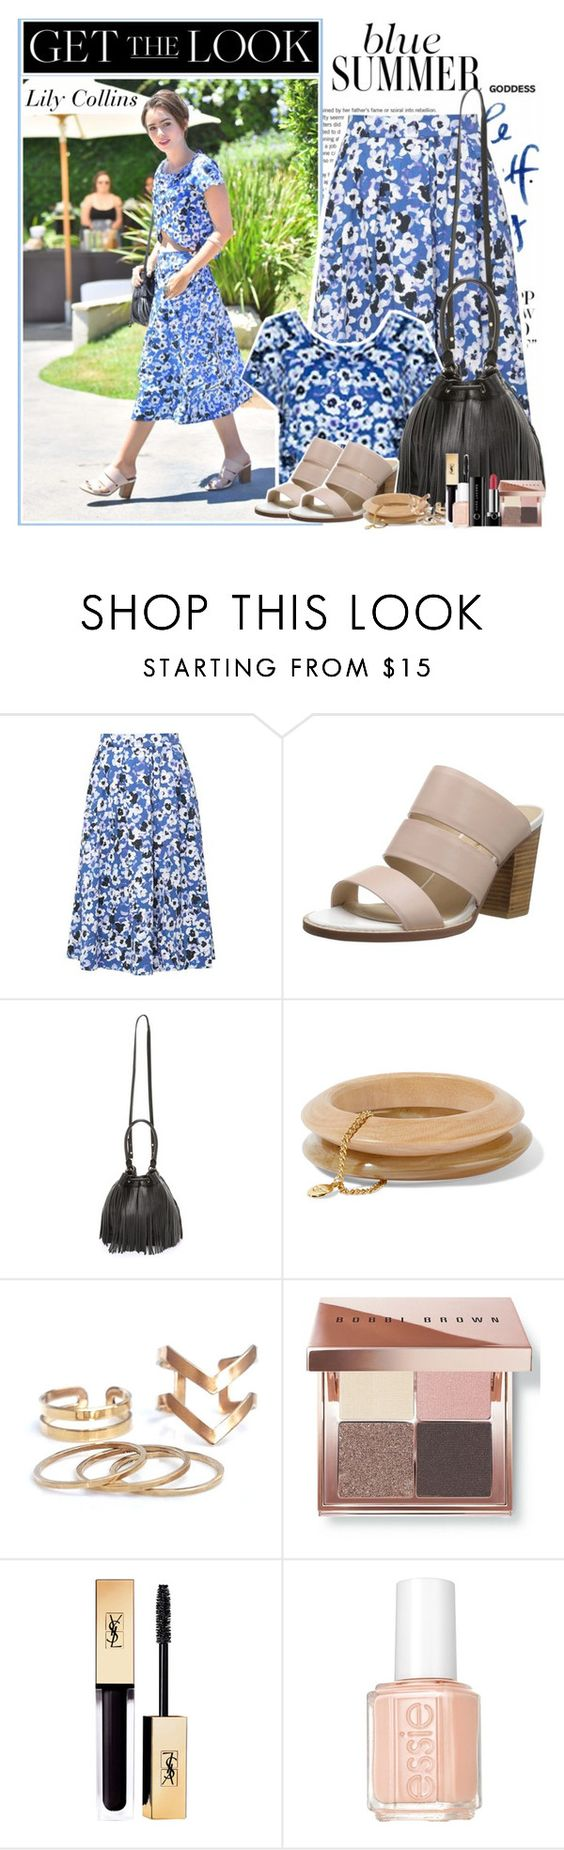 """""""Lily Collins : )"""" by thisiswhoireallyam7 ❤ liked on Polyvore featuring Sol Sana, Milly, Ben-Amun, Bobbi Brown Cosmetics, Essie, Marc Jacobs, GetTheLook, fringe, floralprint and summersandals"""